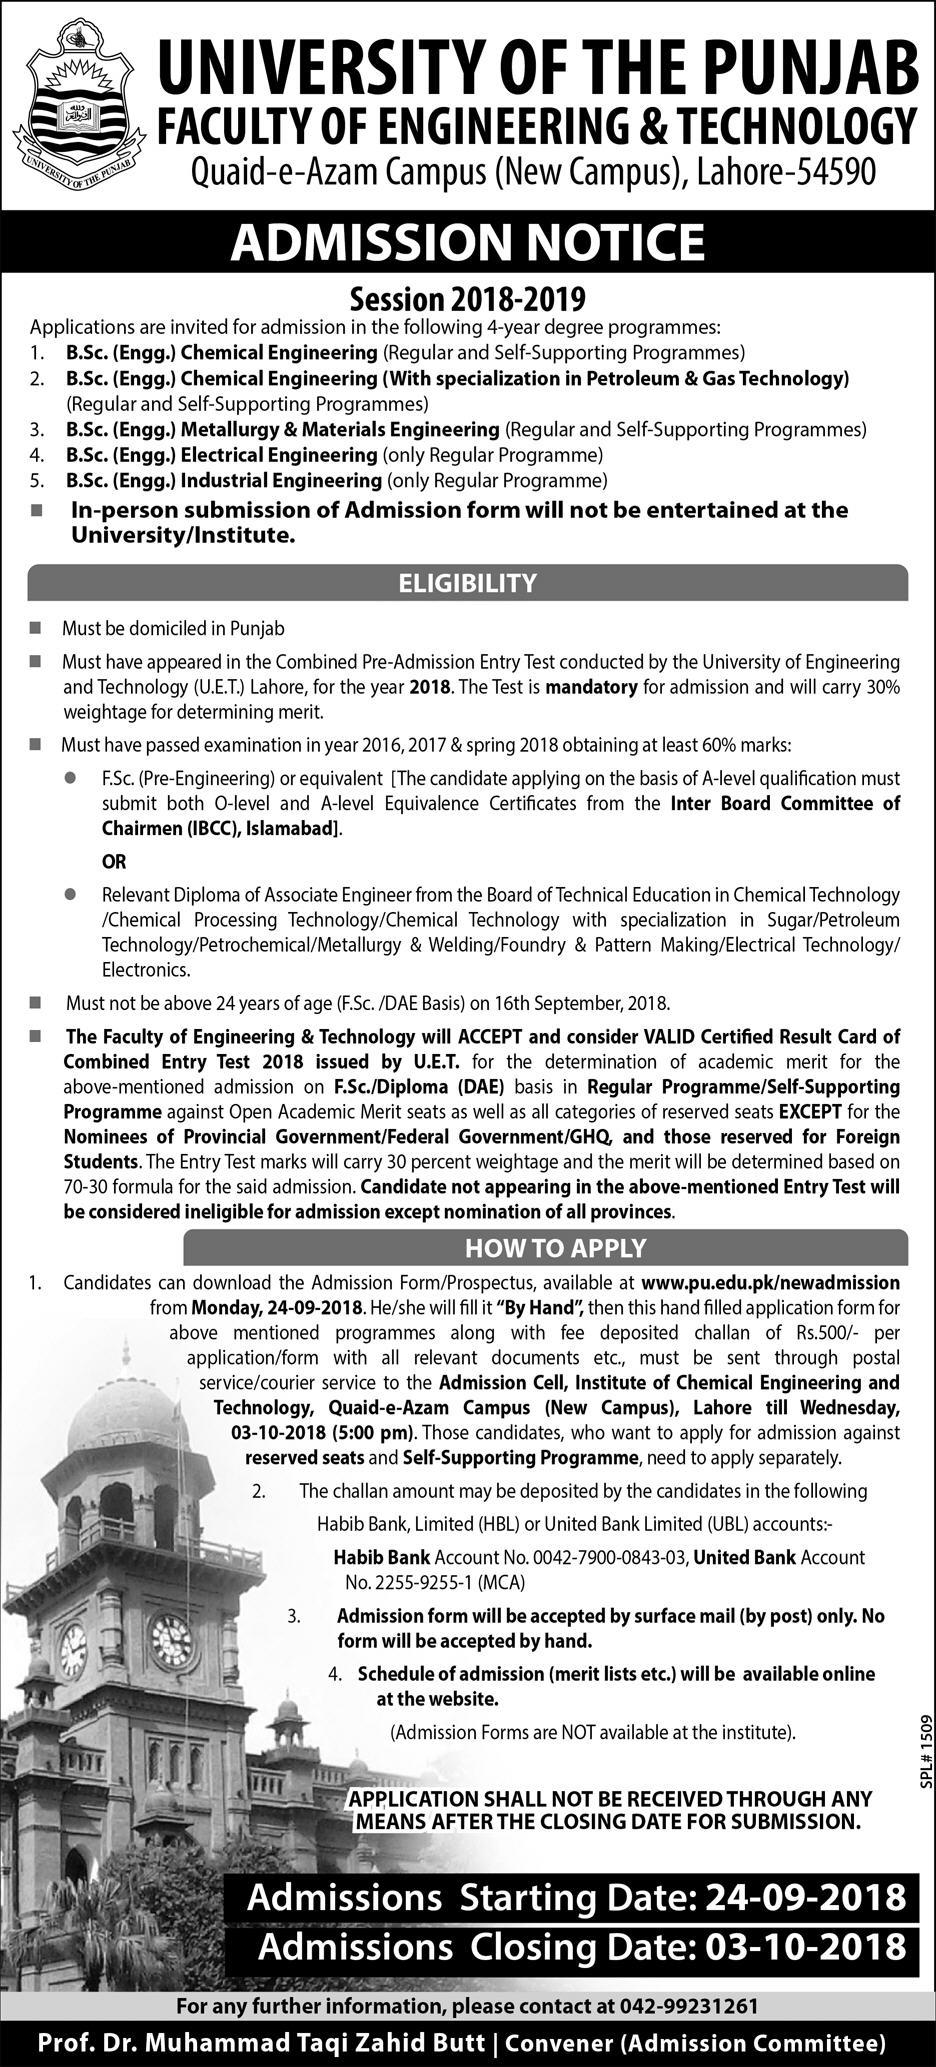 University of the Punjab Faculty of Engineering & Technology – Admissions 2018-19